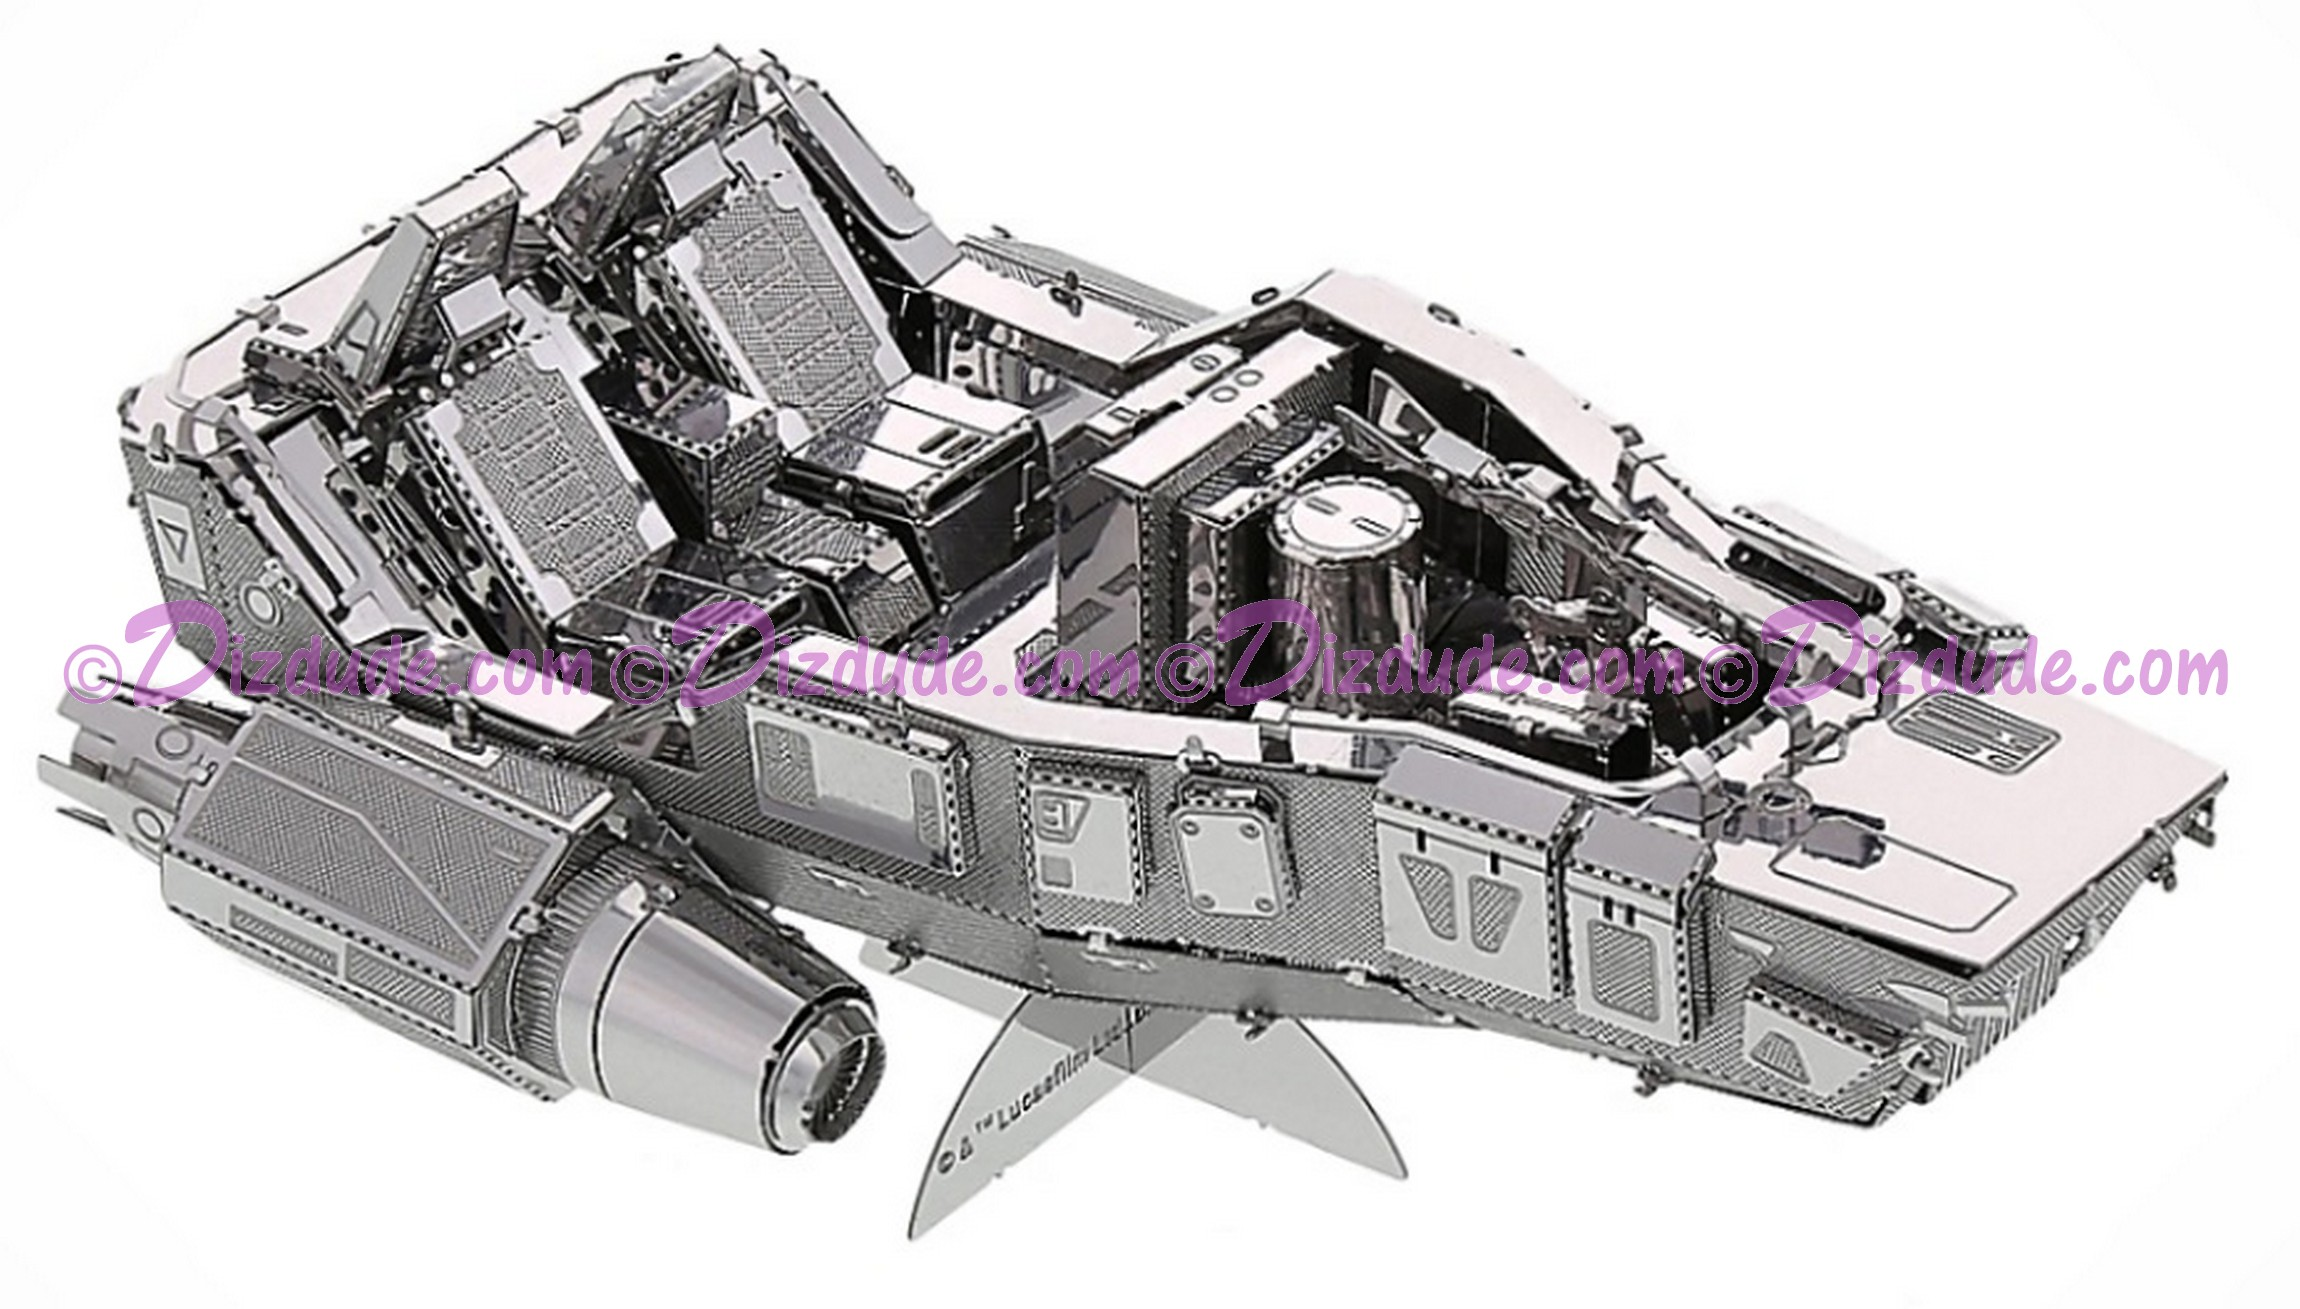 The Force Awakens First Order Snowspeeder 3D Metal Model Kit ~ Disney Star Wars © Dizdude.com